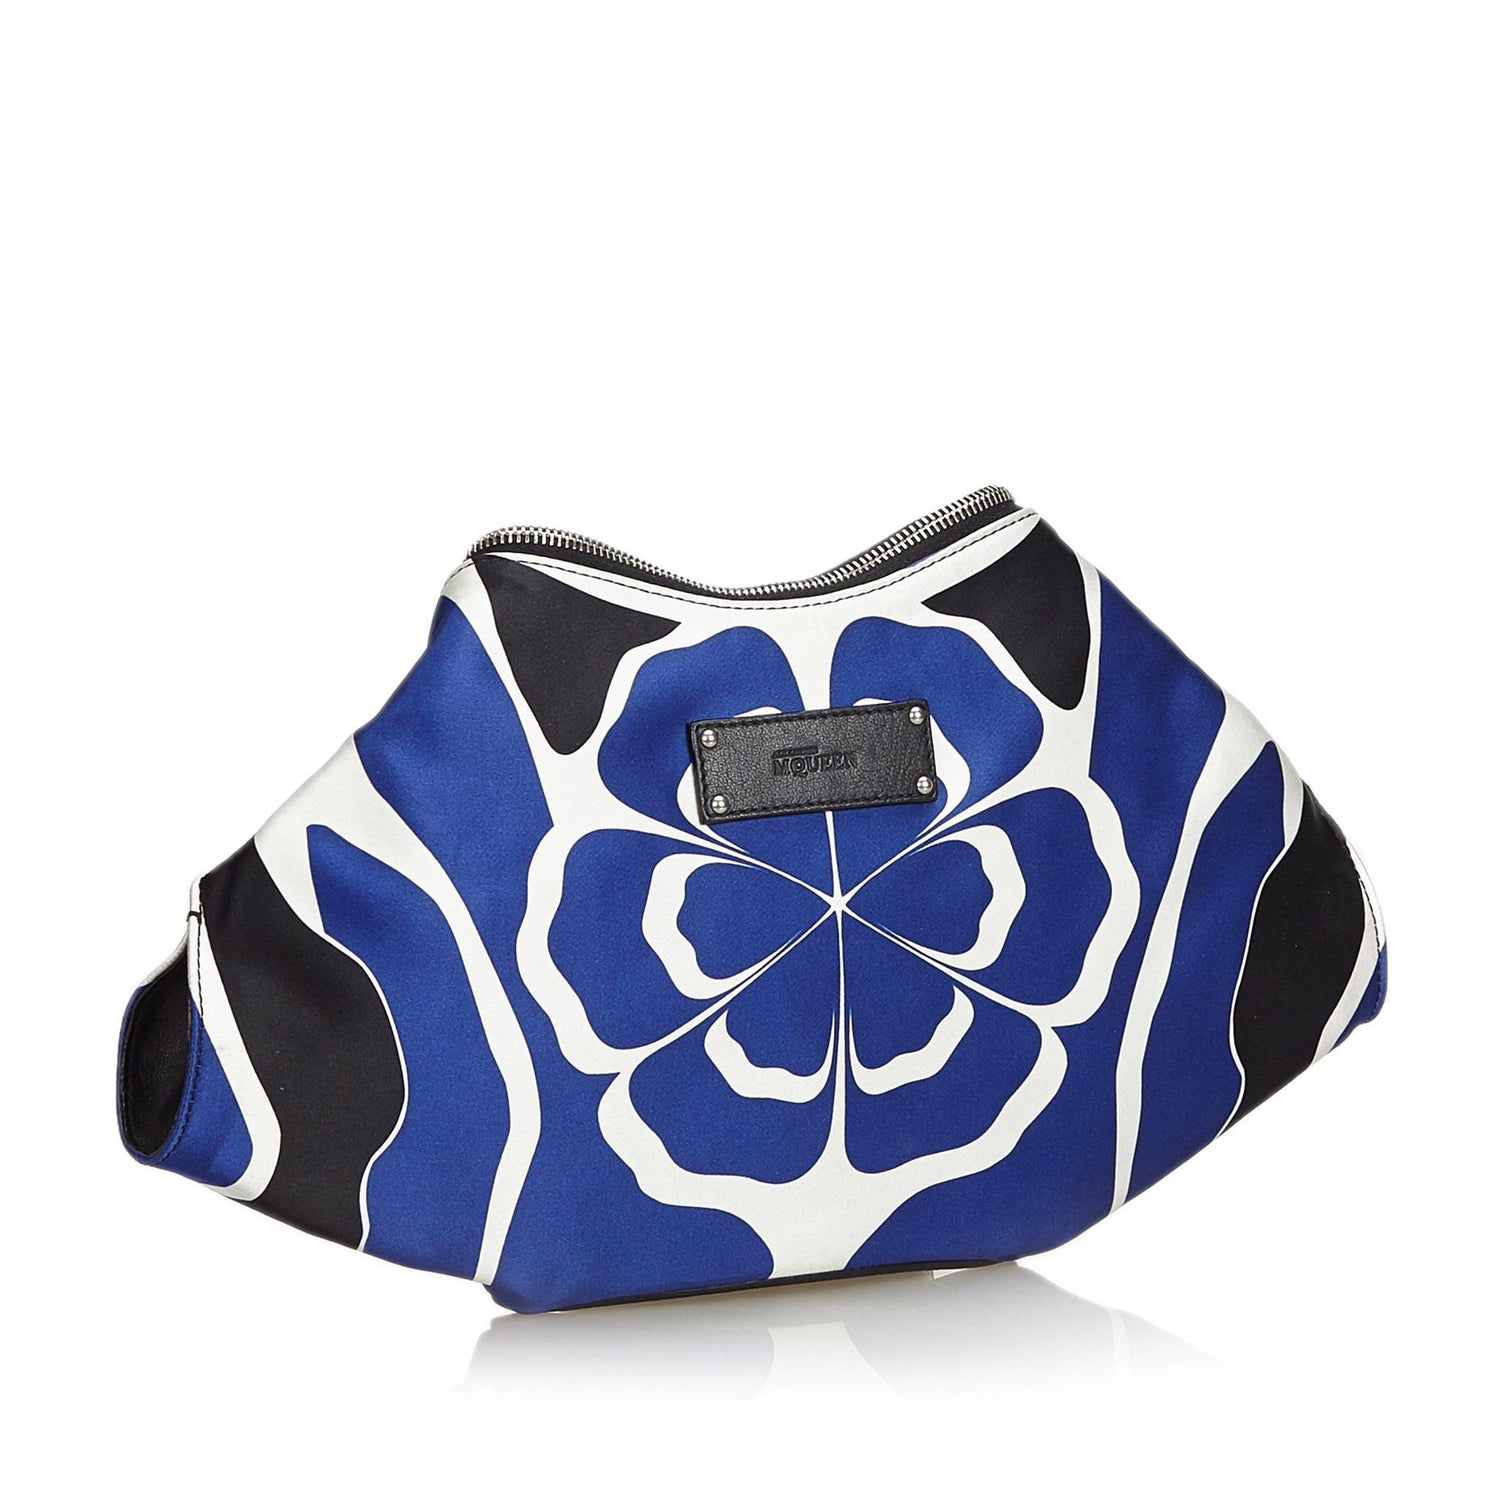 ed8908fd605a Alexander Mcqueen Blue Satin Fabric De Manta Union Jack Clutch Bag Italy at  1stdibs